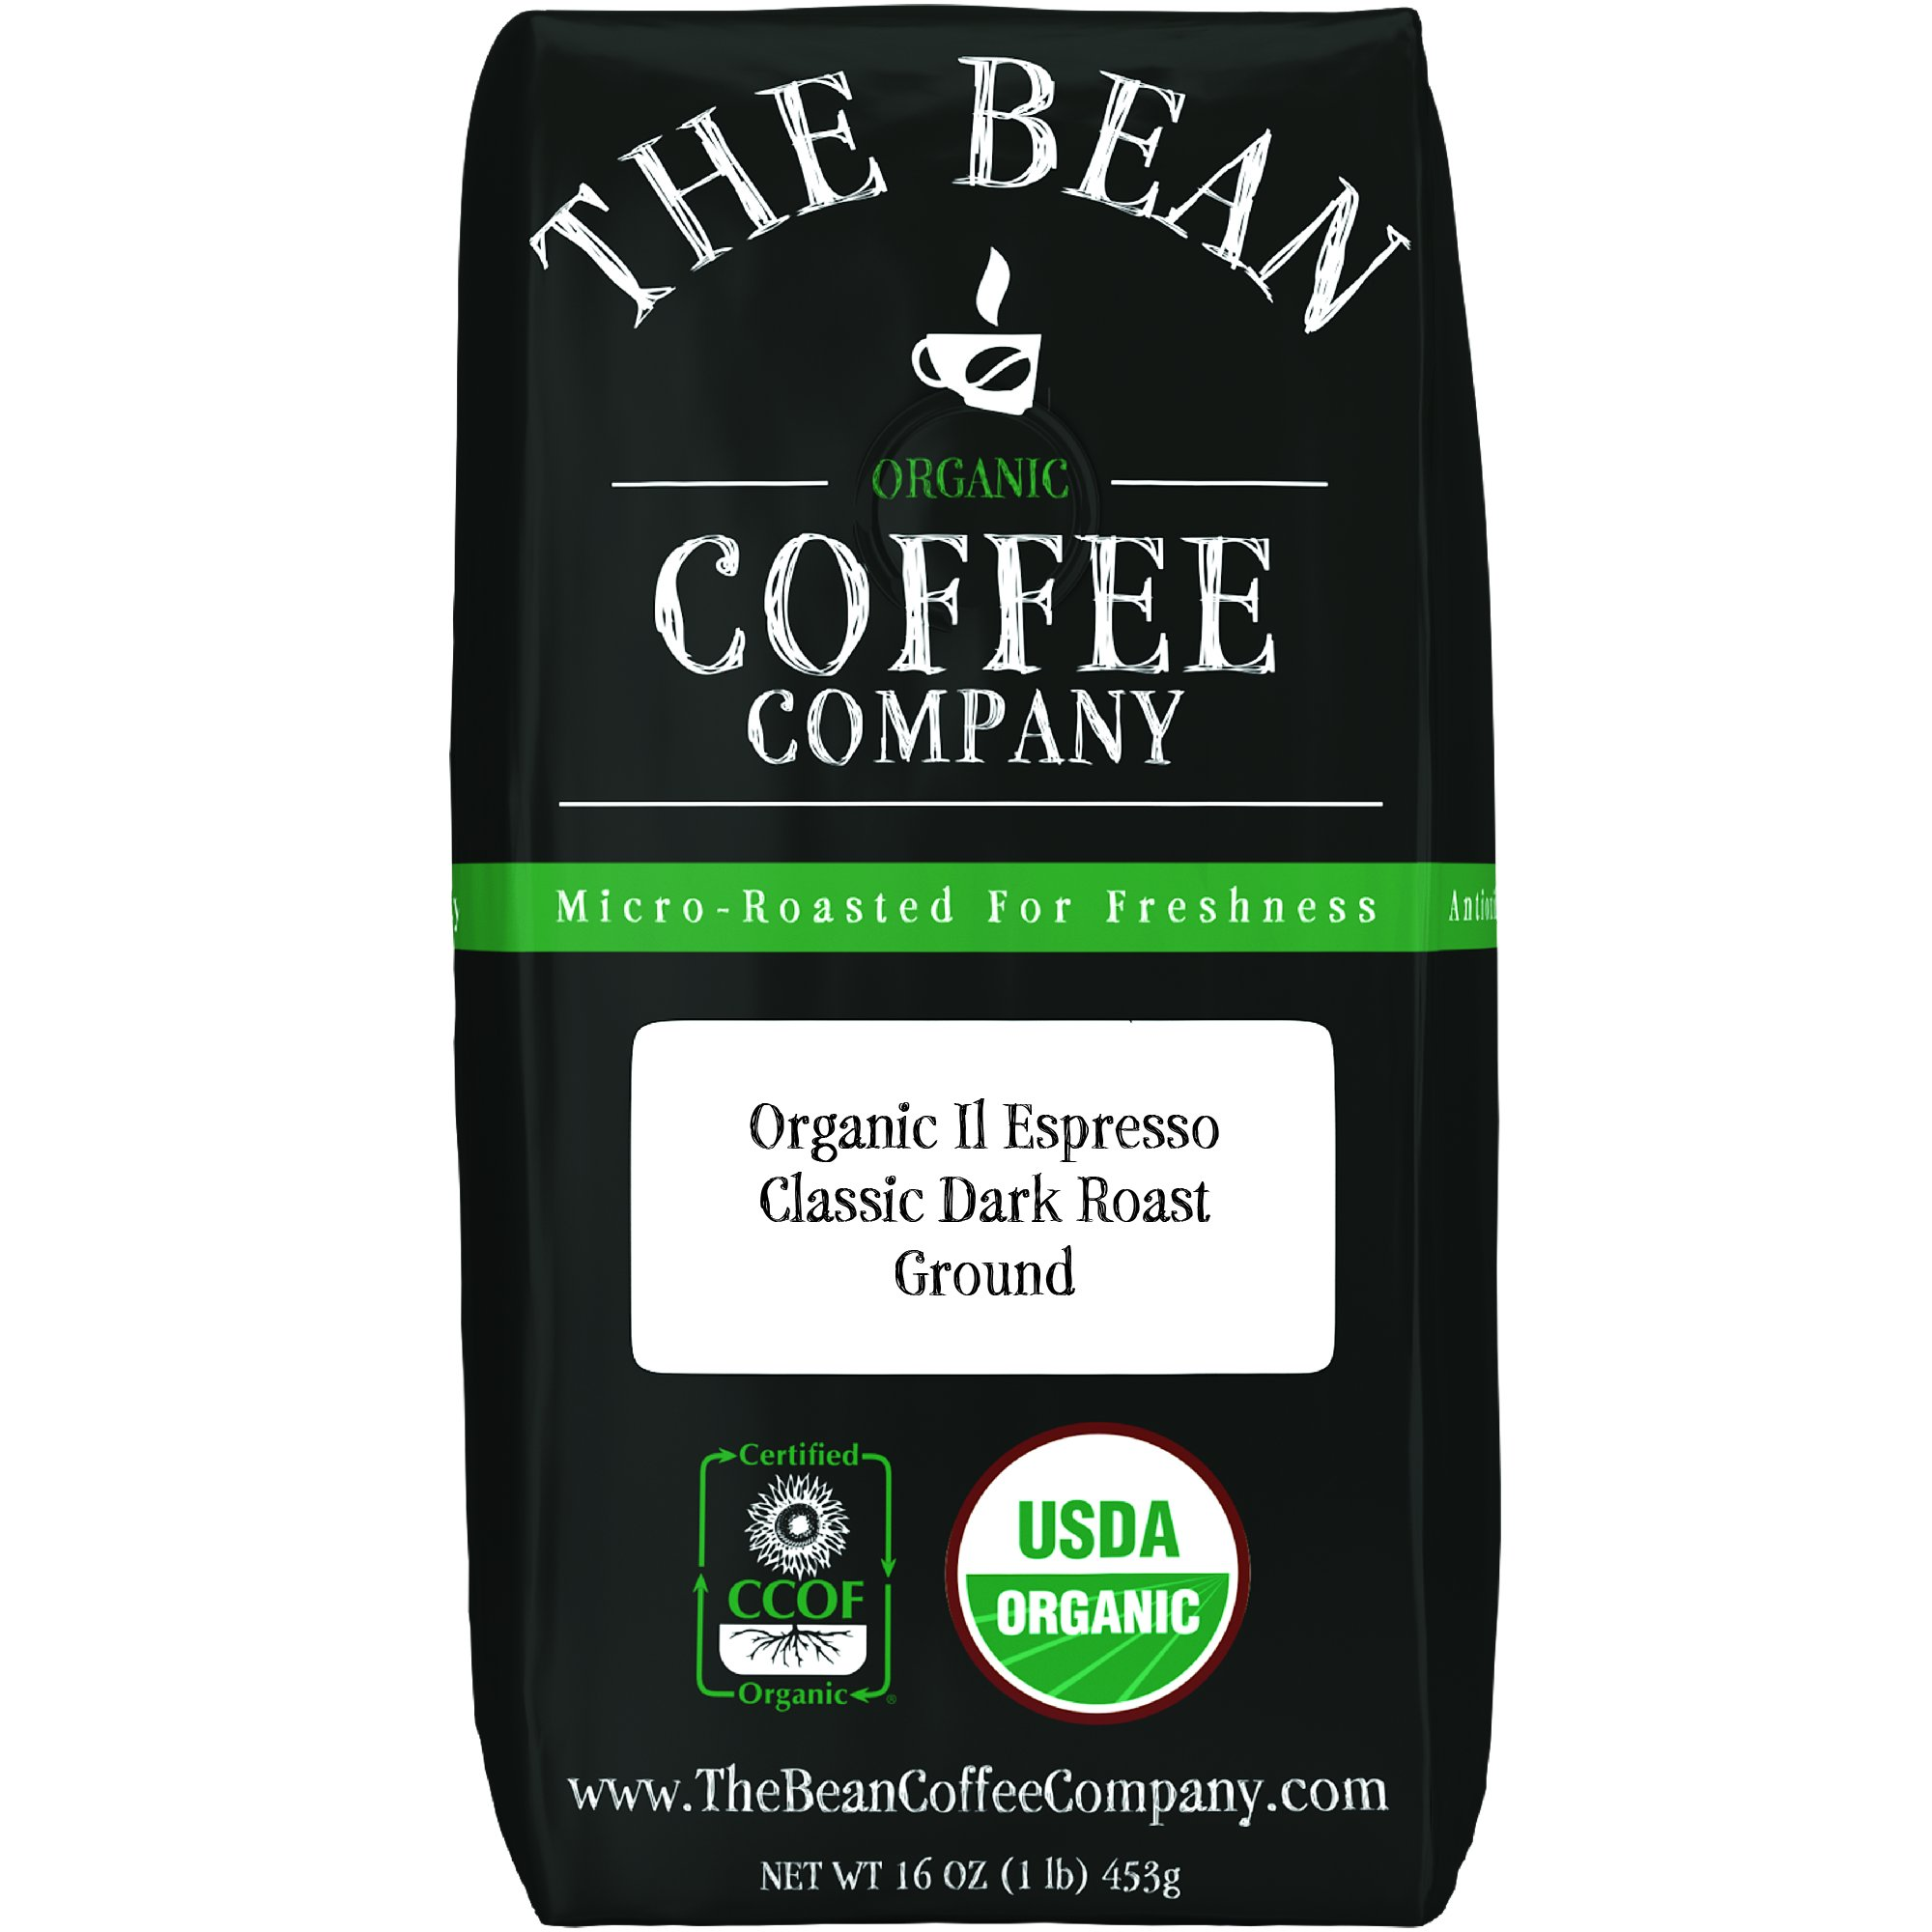 The Bean Coffee Company Organic Il Espresso, Classic Dark Roast, Ground, 16-Ounce Bag